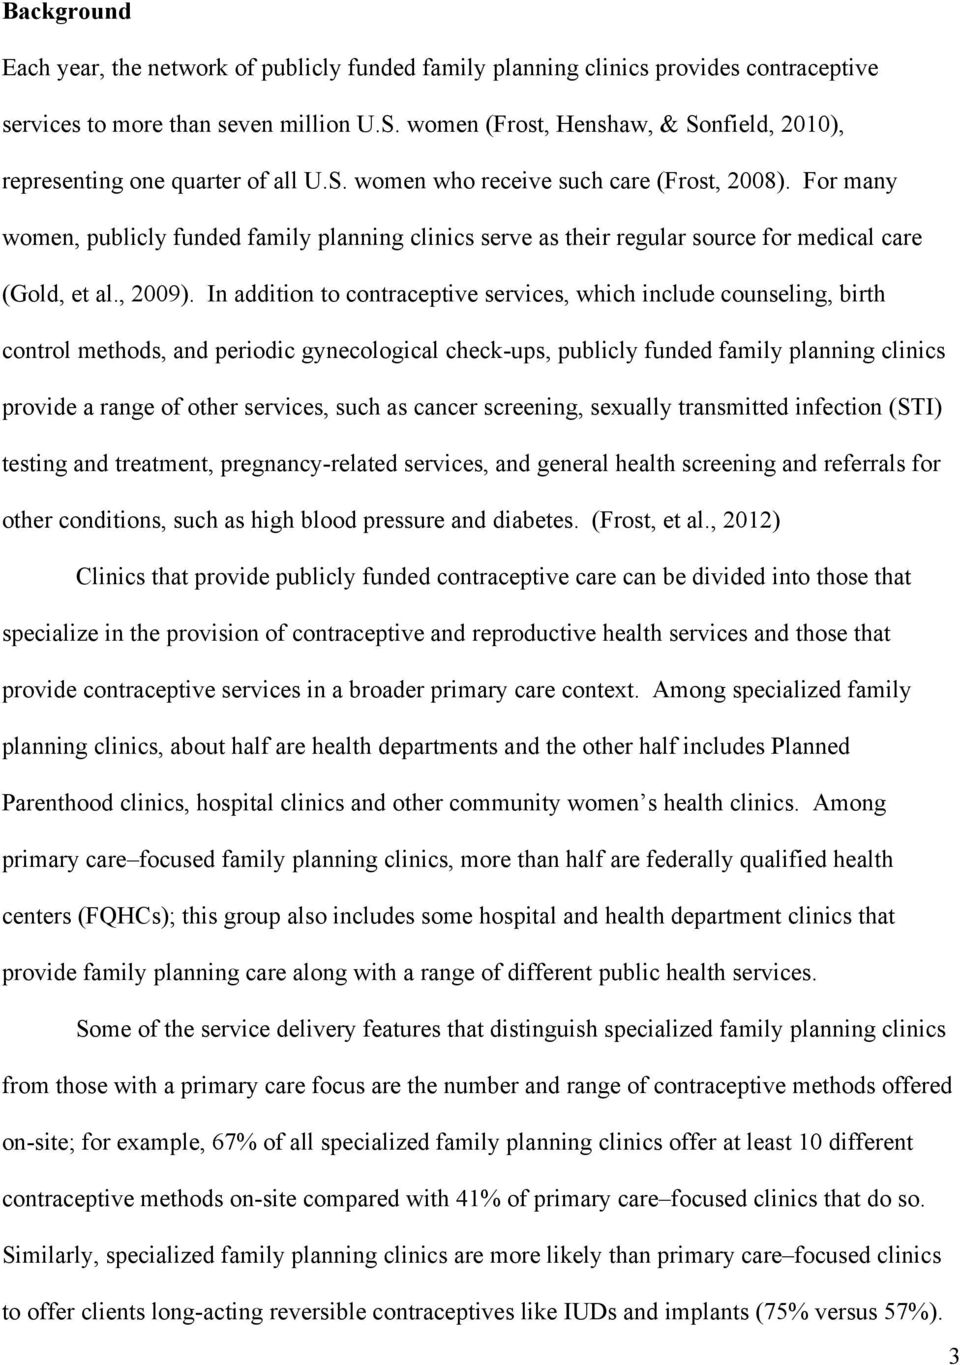 For many women, publicly funded family planning clinics serve as their regular source for medical care (Gold, et al., 2009).